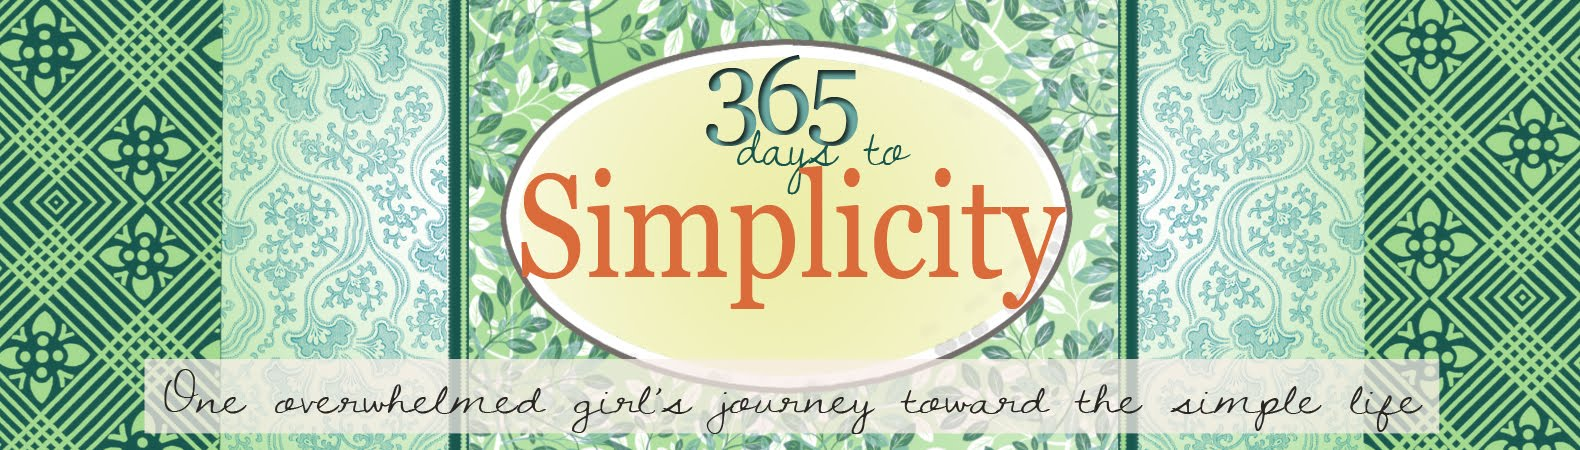 365 Days to Simplicity